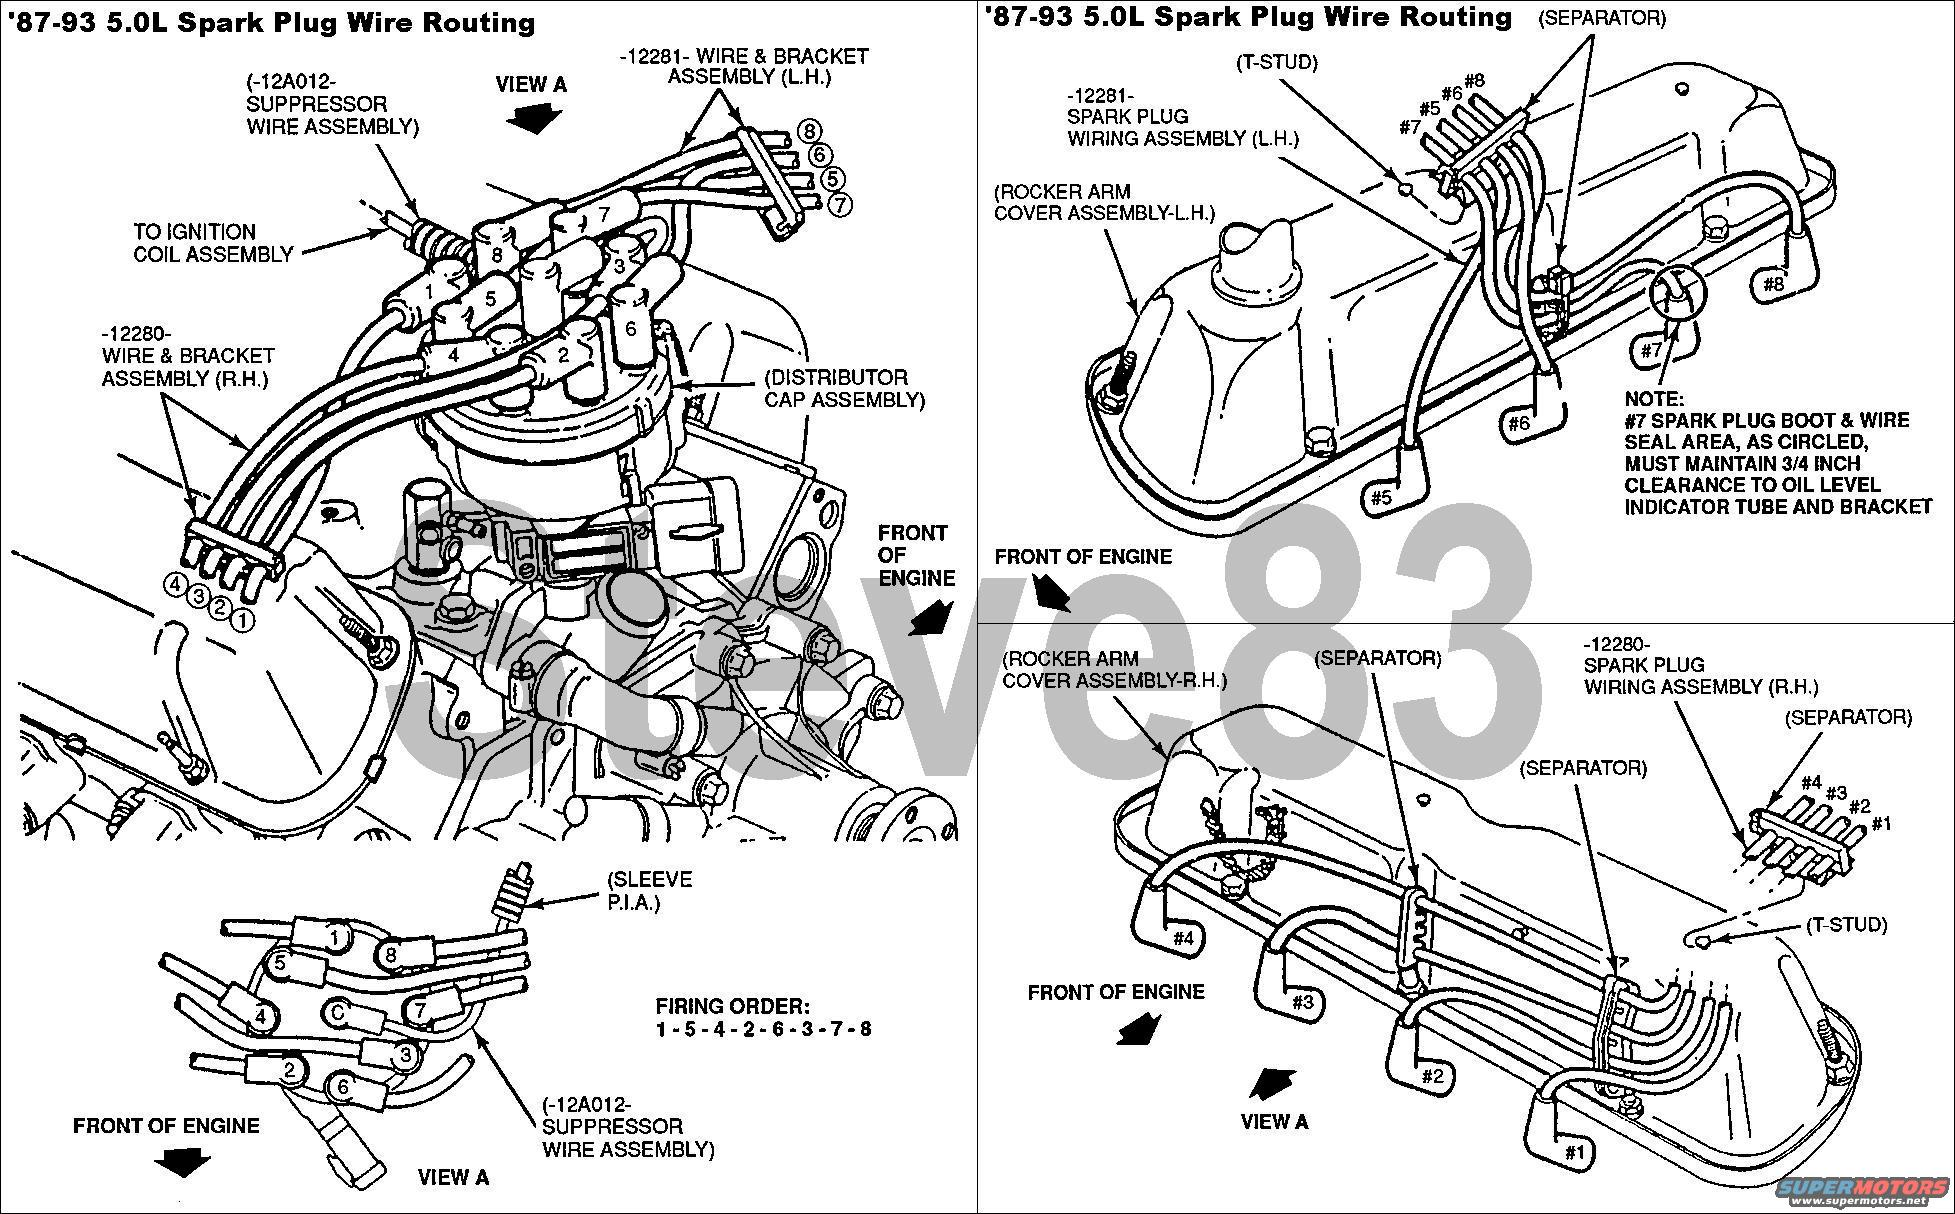 Spark Plug Wiring Diagram For 95 Chevy Silverado | Wiring Diagram